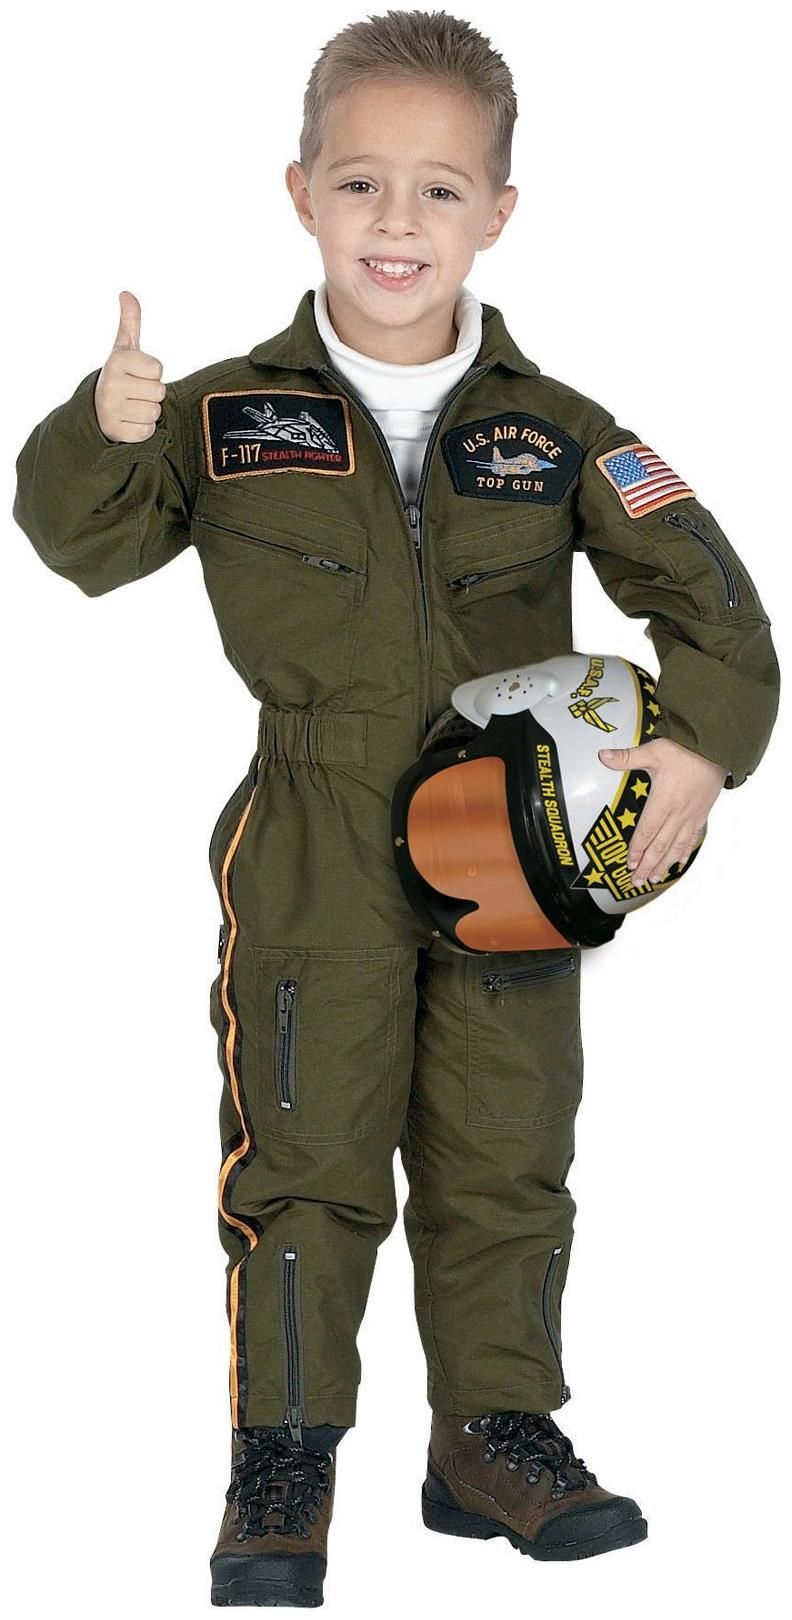 Have your boy feel like a hero in this pilot costume. he is going to look like a professional air force pilot. This impressive will make everyone salute to your kid. #armedforcesday #childcostumes #childarmycostumes #childmilitarycostumes #partydresses #militarycostumes #boyspartycostumes #boysarmycostumes